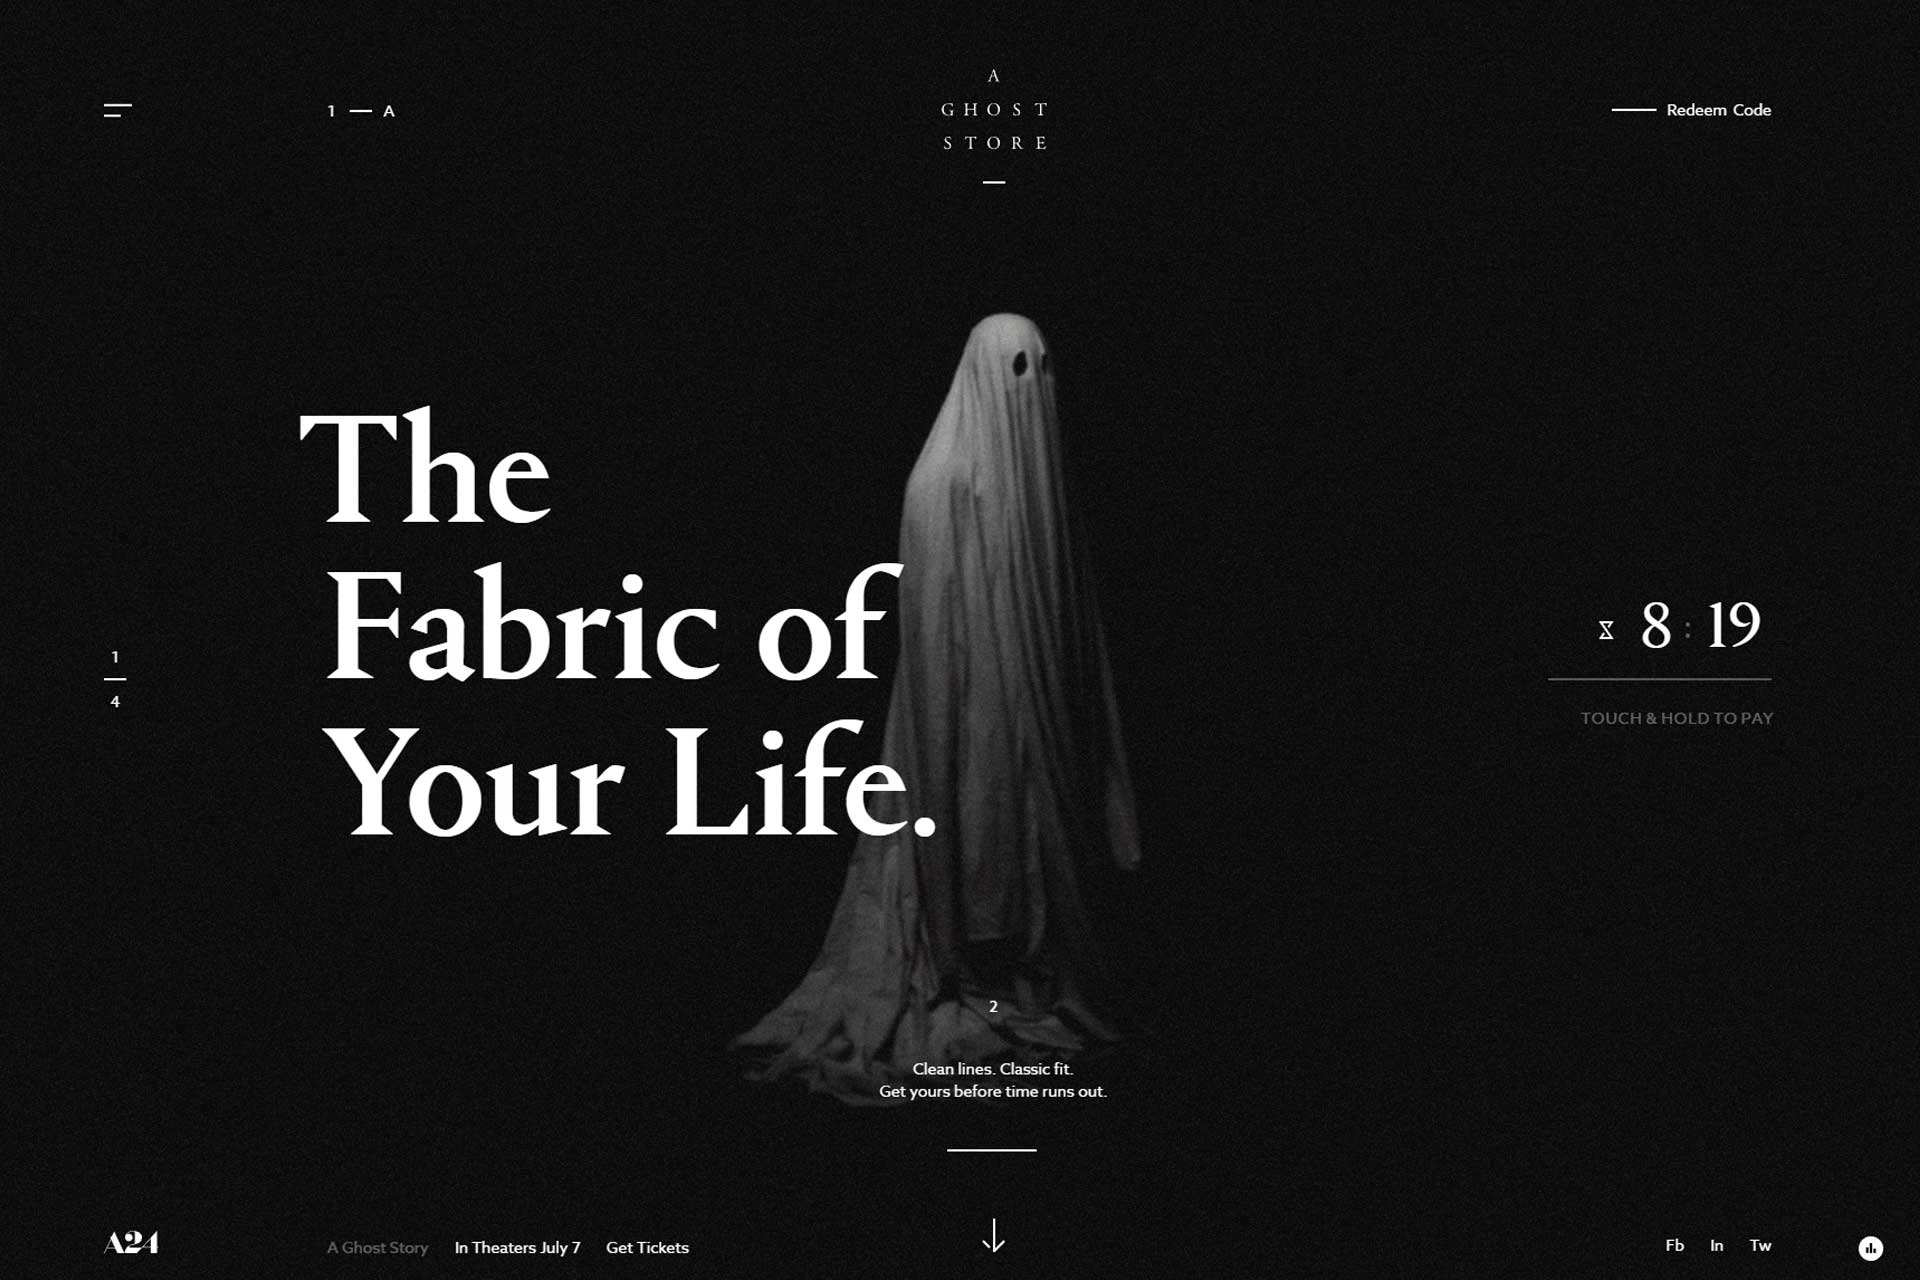 Best Web Designed Sites For June 2017, A Ghost Store